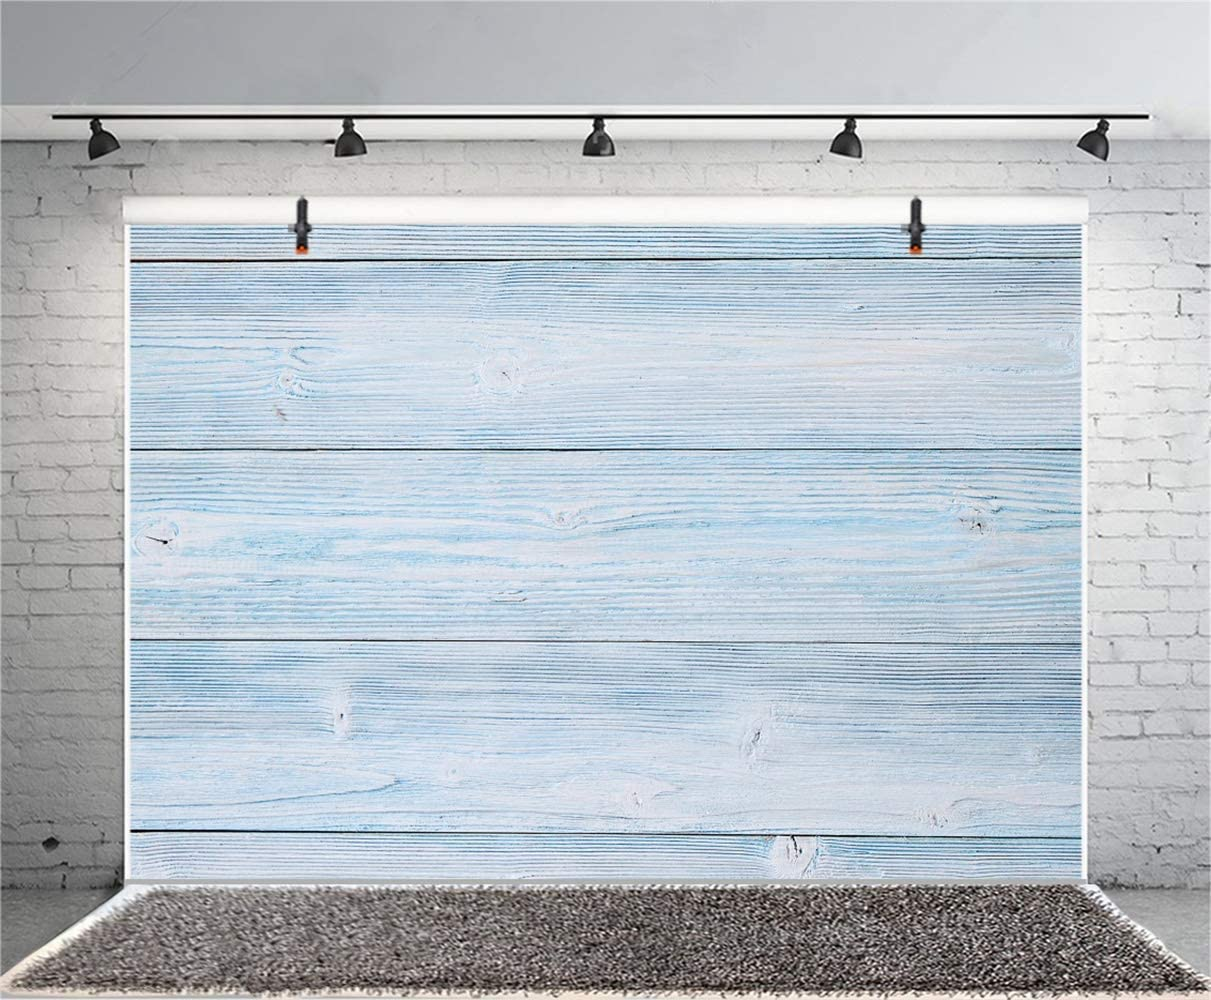 Polyester 8x6ft Grunge Faded Blue Lateral-Cut Wood Texture Plank Photography Background Weathered Wooden Board Backdrop Children Adult Pets Artistic Portrait Shoot Wallpaper Studio